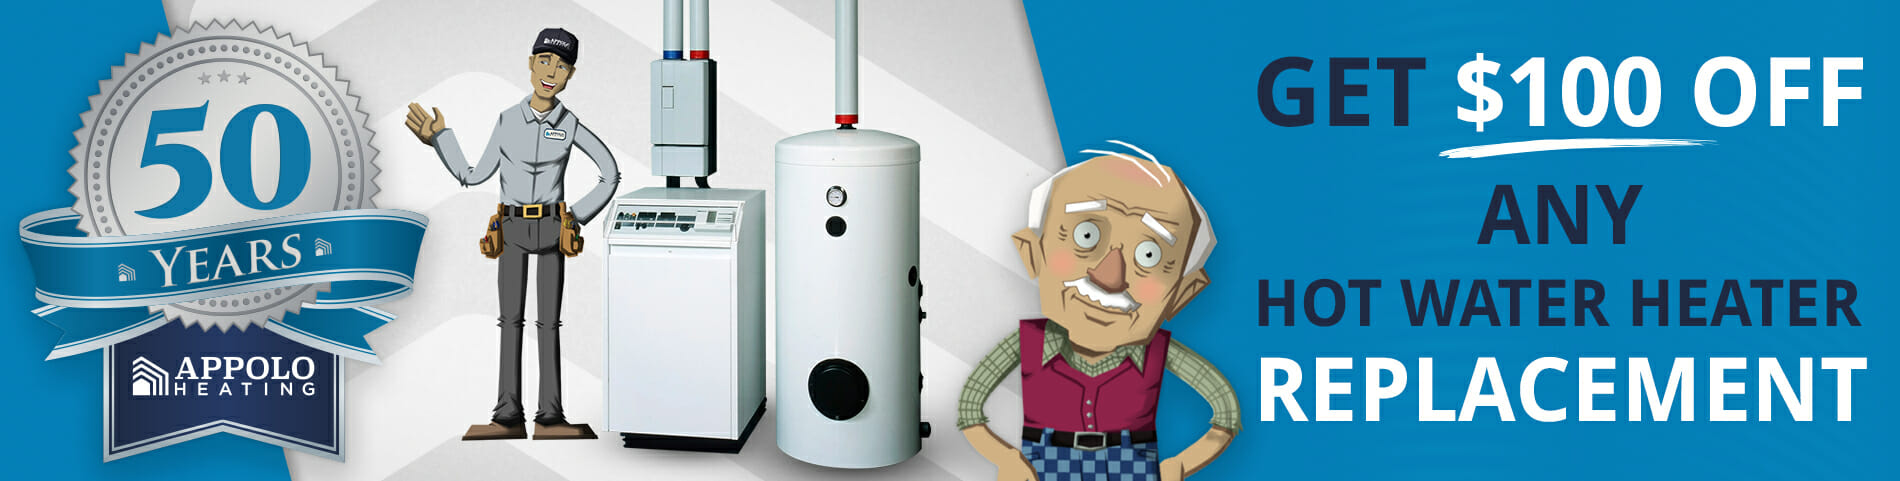 $100 off A Hot Water Heater